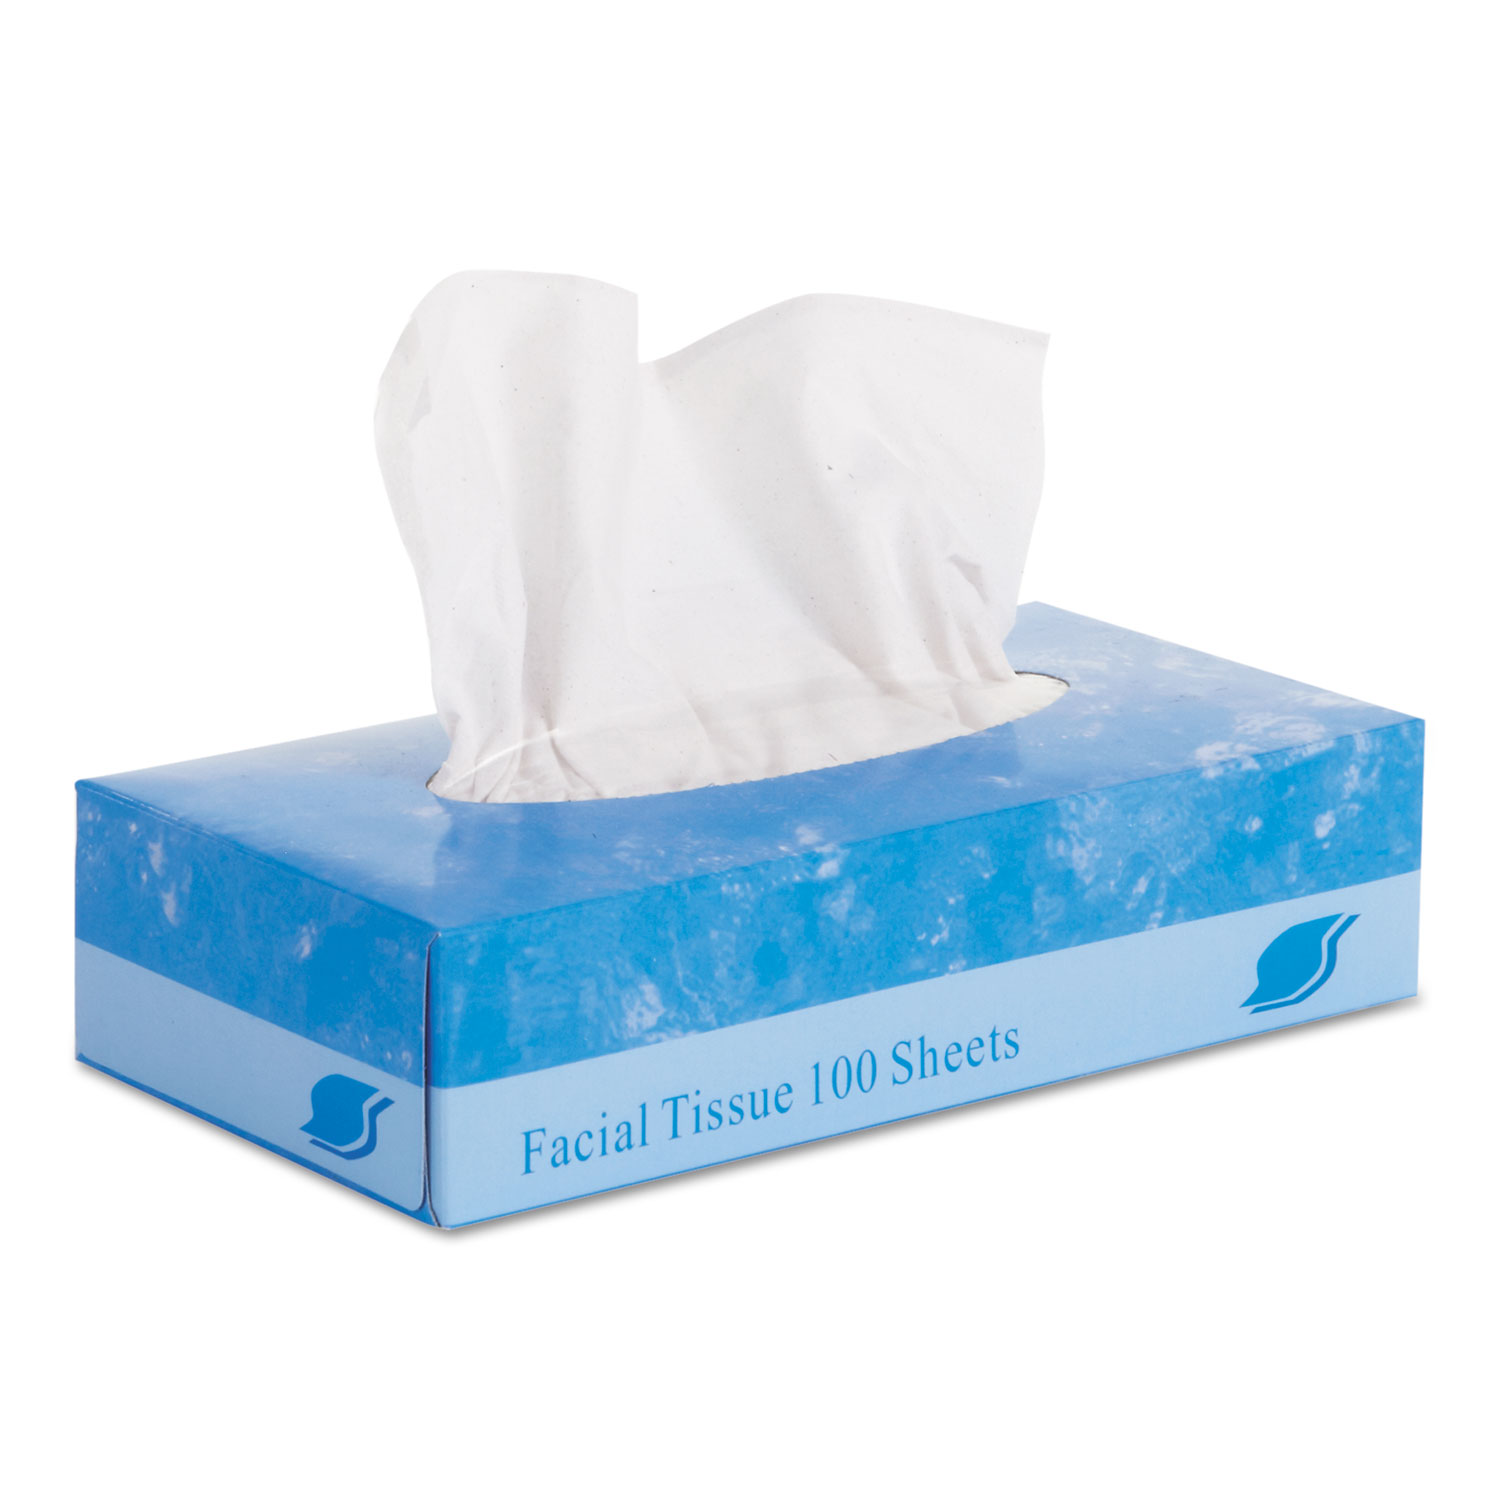 "Facial Tissue, Flat Box, 2-Ply, 8"" x 8.3"", 100/Box, 30 Boxes/Carton"